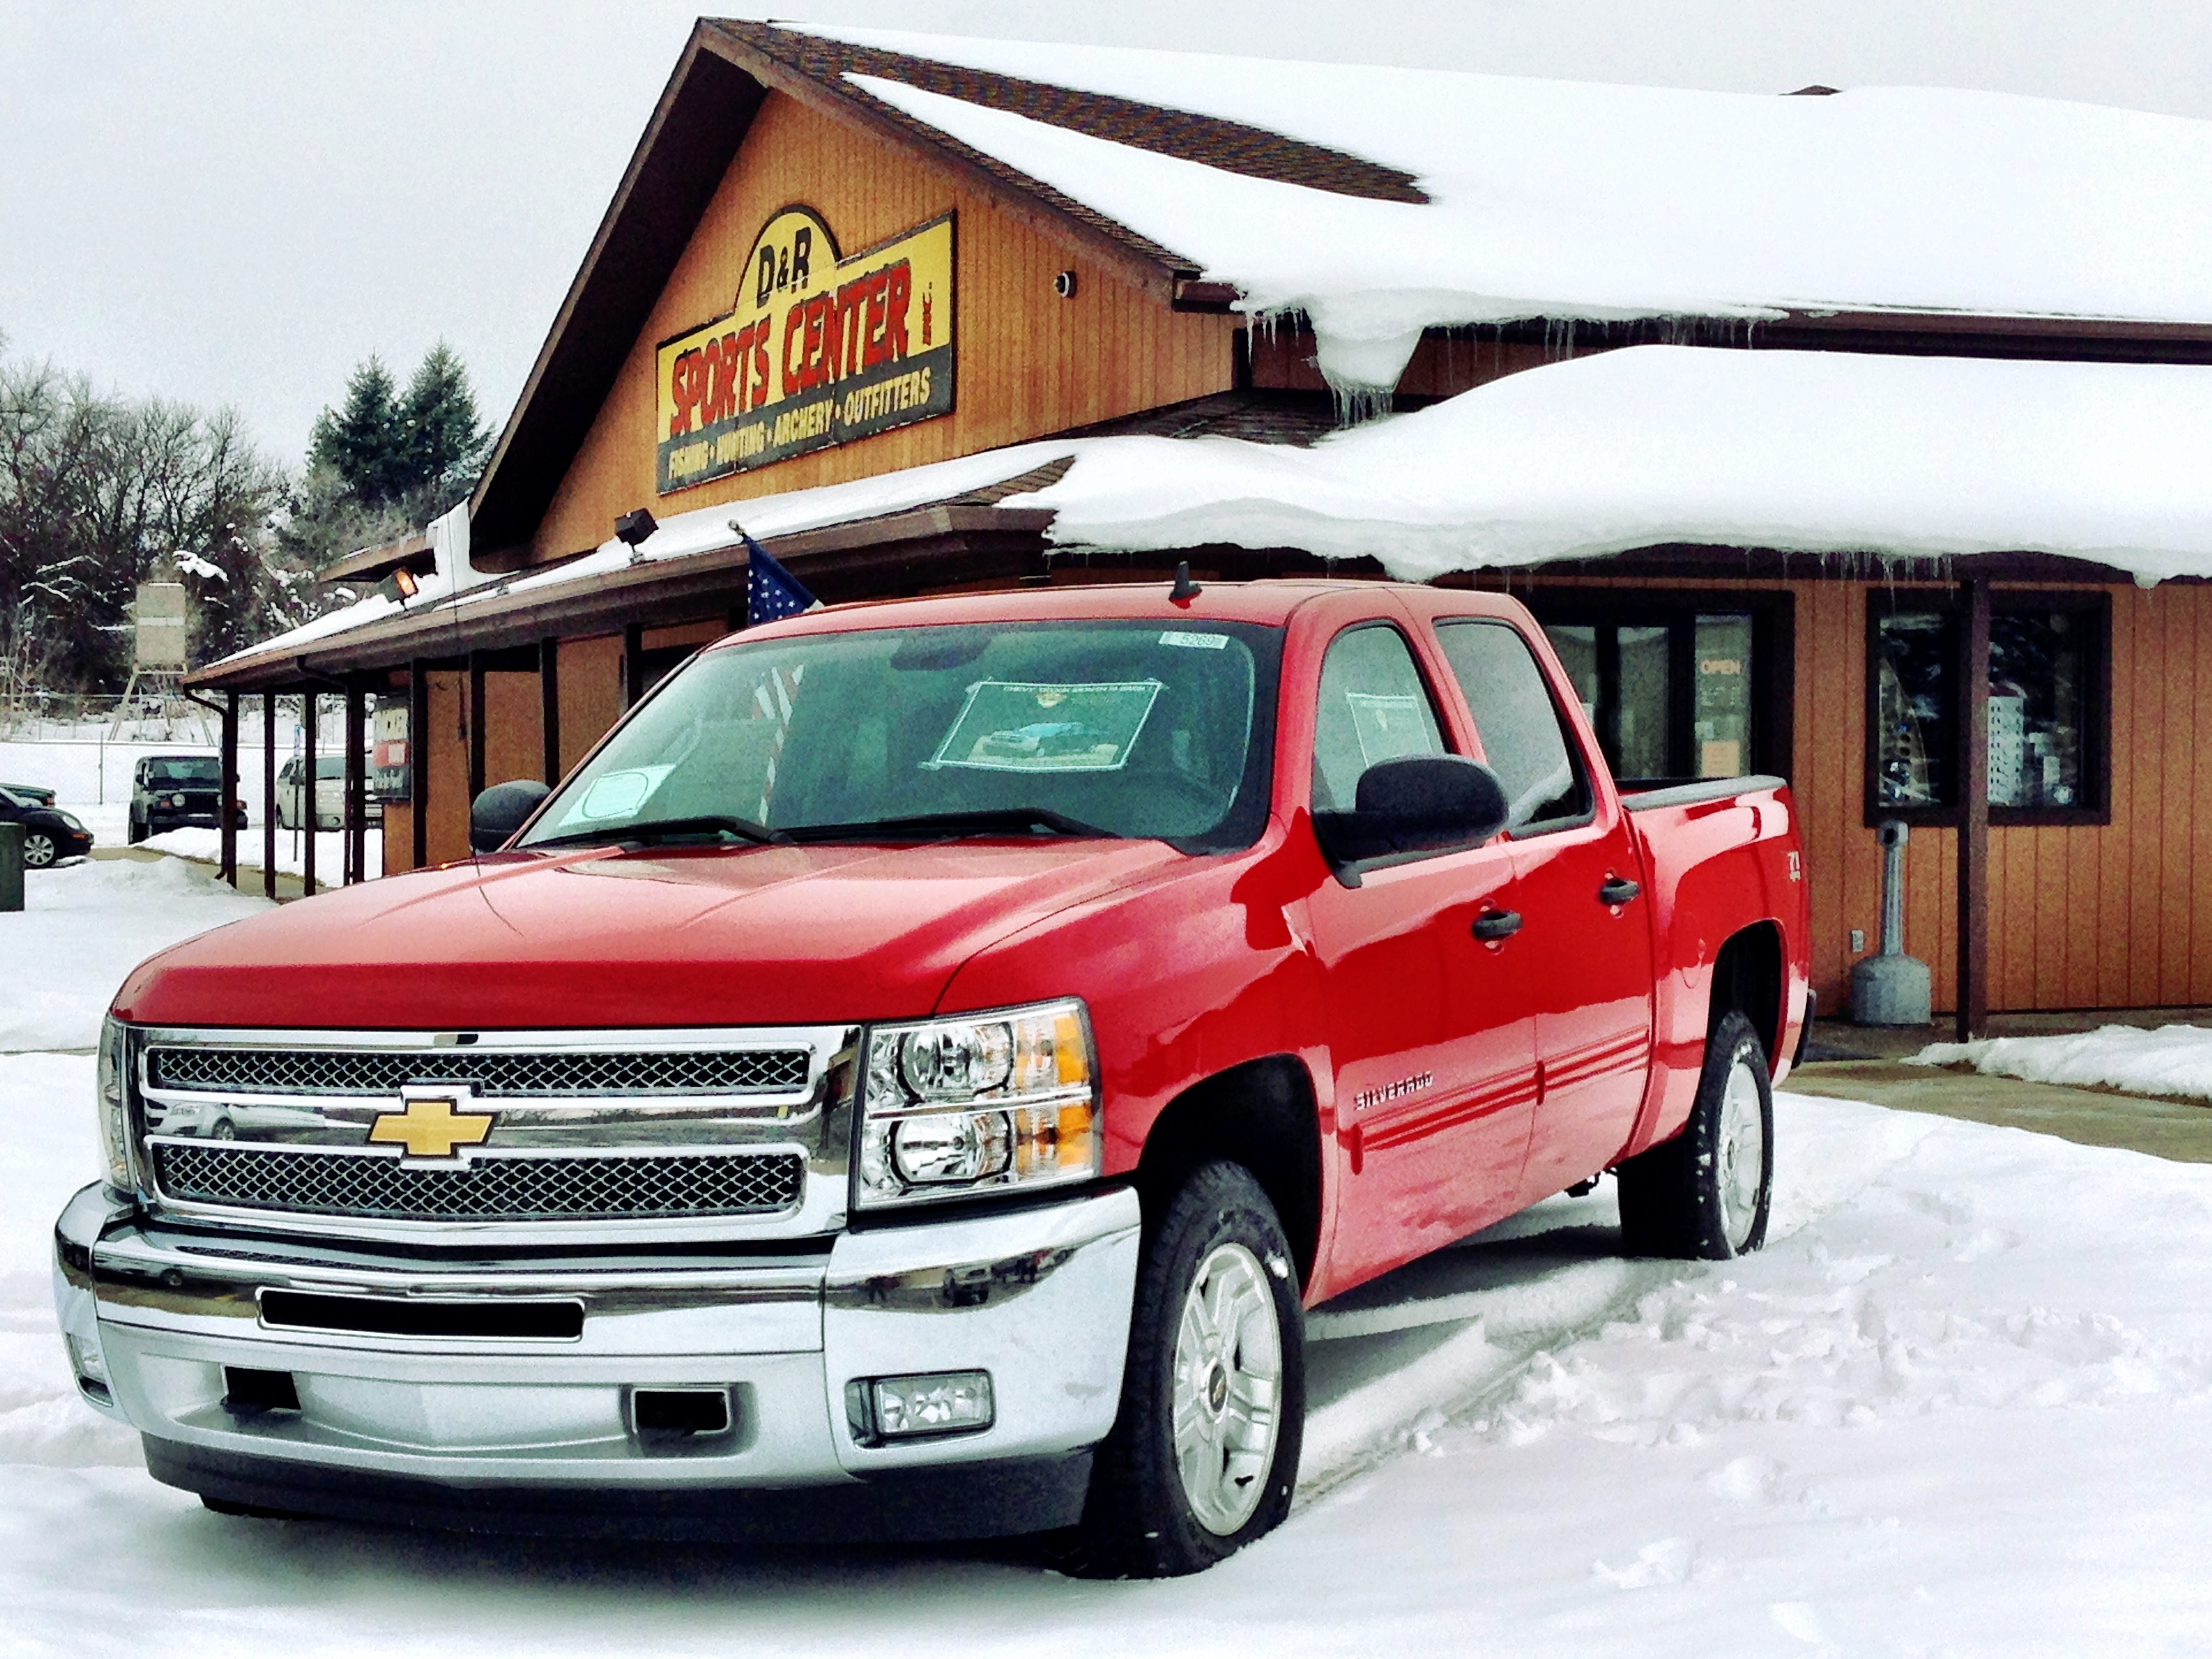 denooyer chevy silverado displayed at d r sports center on west main. Cars Review. Best American Auto & Cars Review